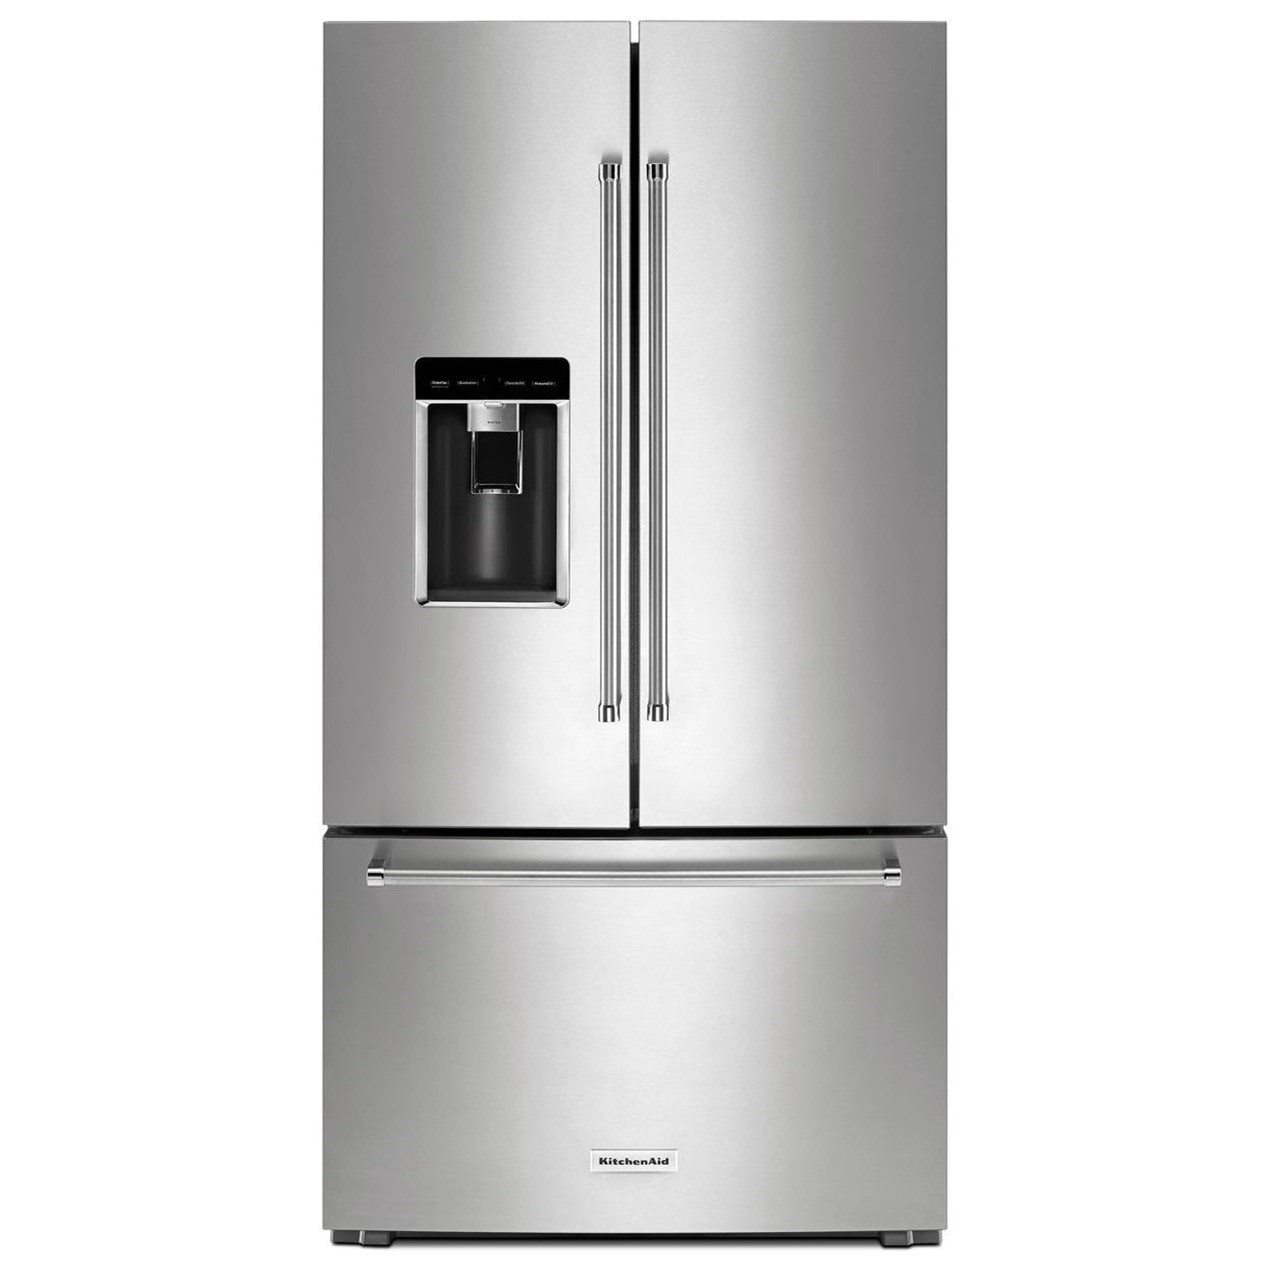 KitchenAid KitchenAid French Door Refrigerators23.8 Cu.Ft. 36